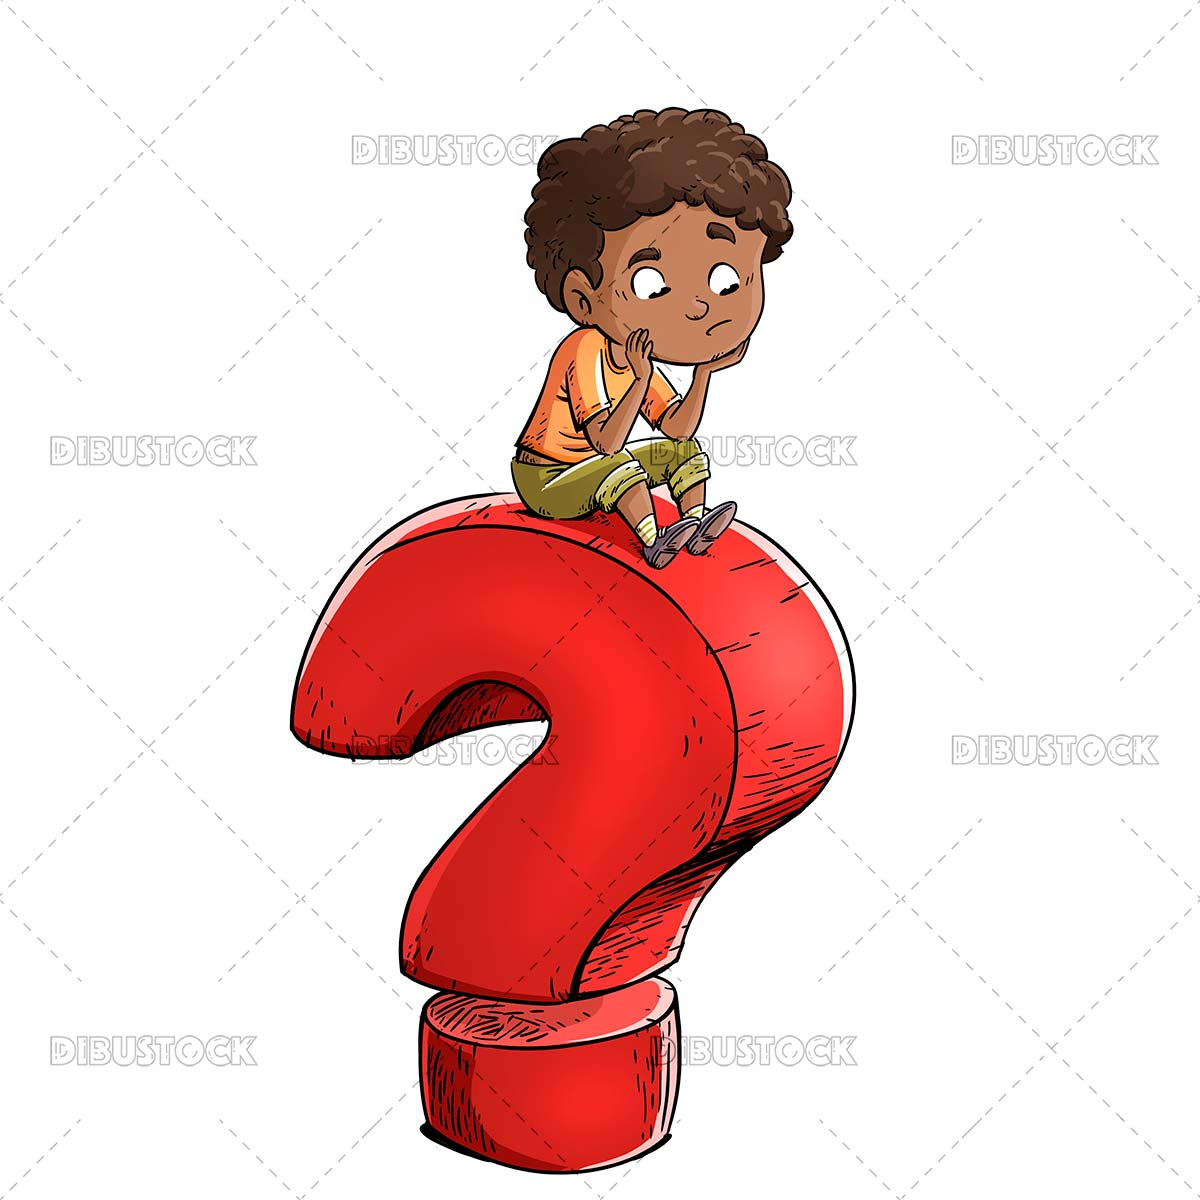 Thoughtful child with question symbol